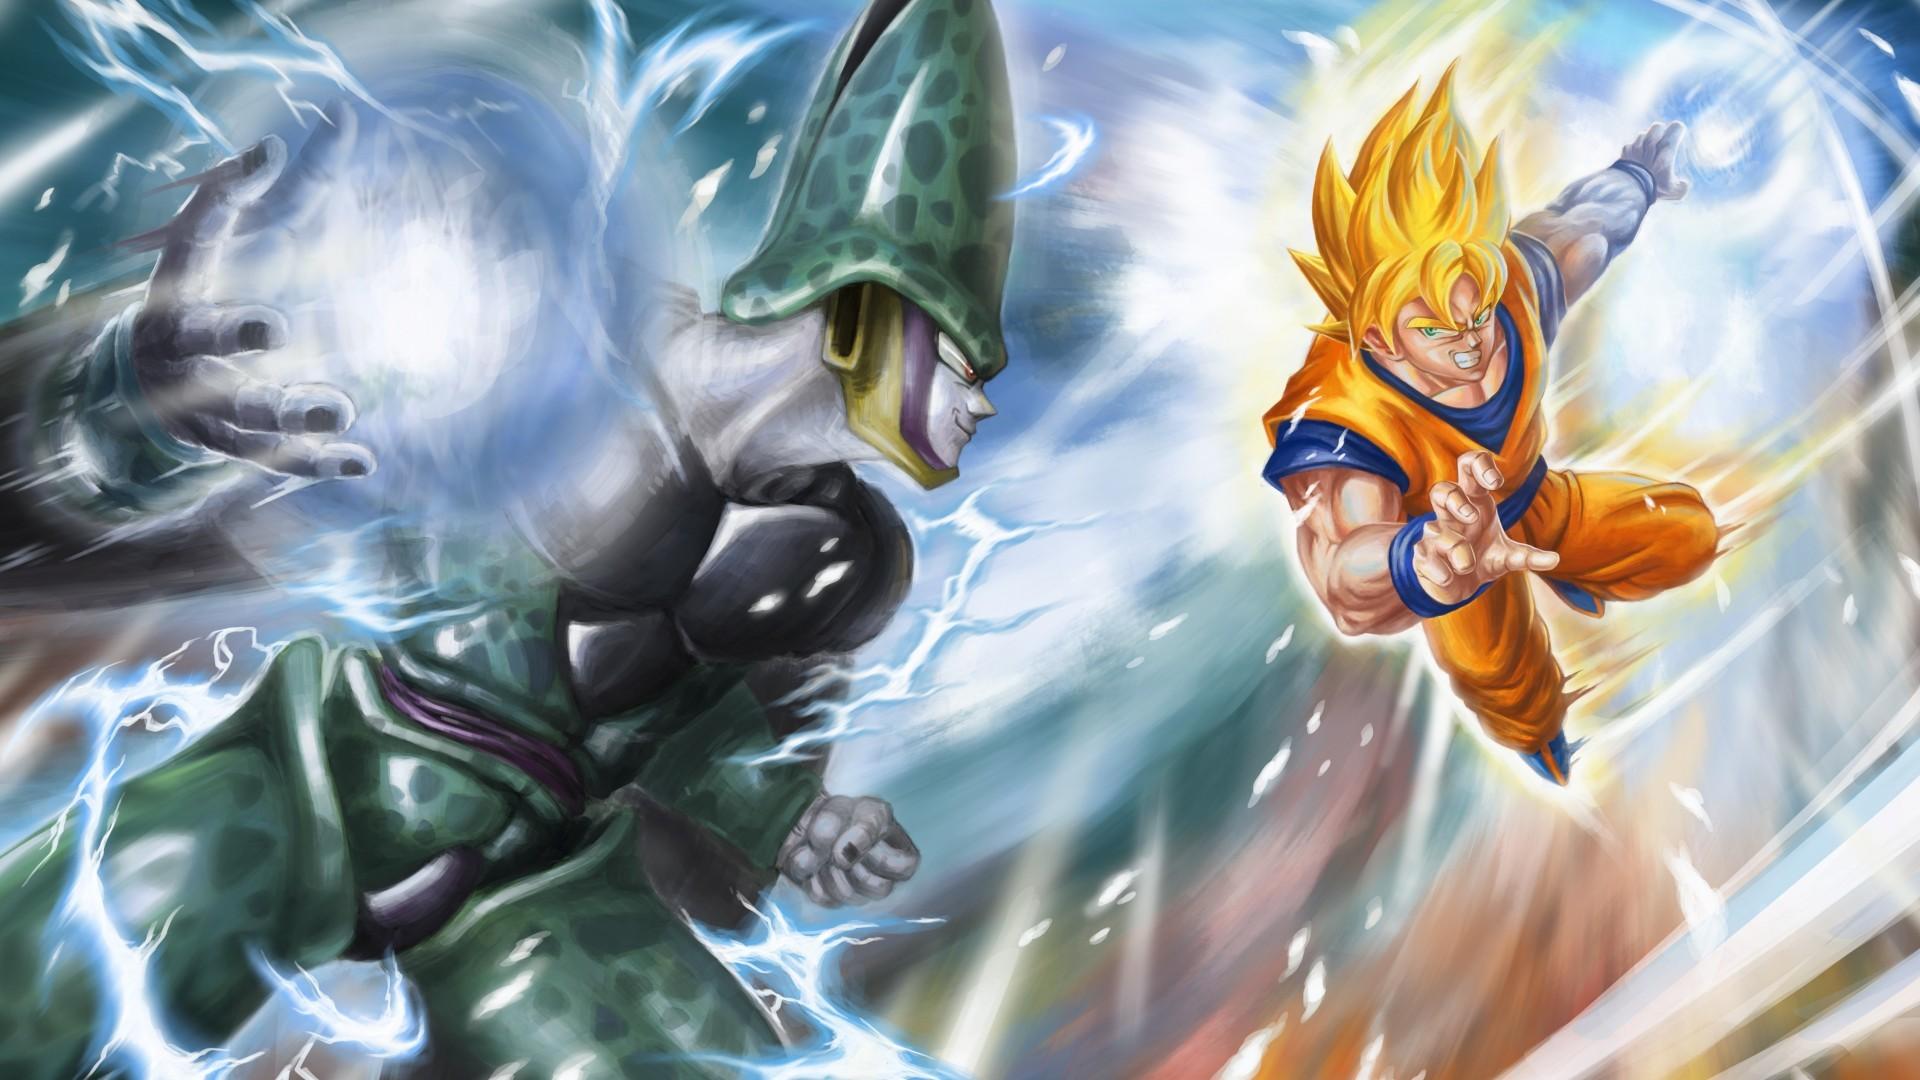 1920x1080 SSJ Goku vs Perfect Cell - Another well choreographed fight in Dbz. and the  shock of Goku forfeiting the match to Cell and passing the torch to Gohan.